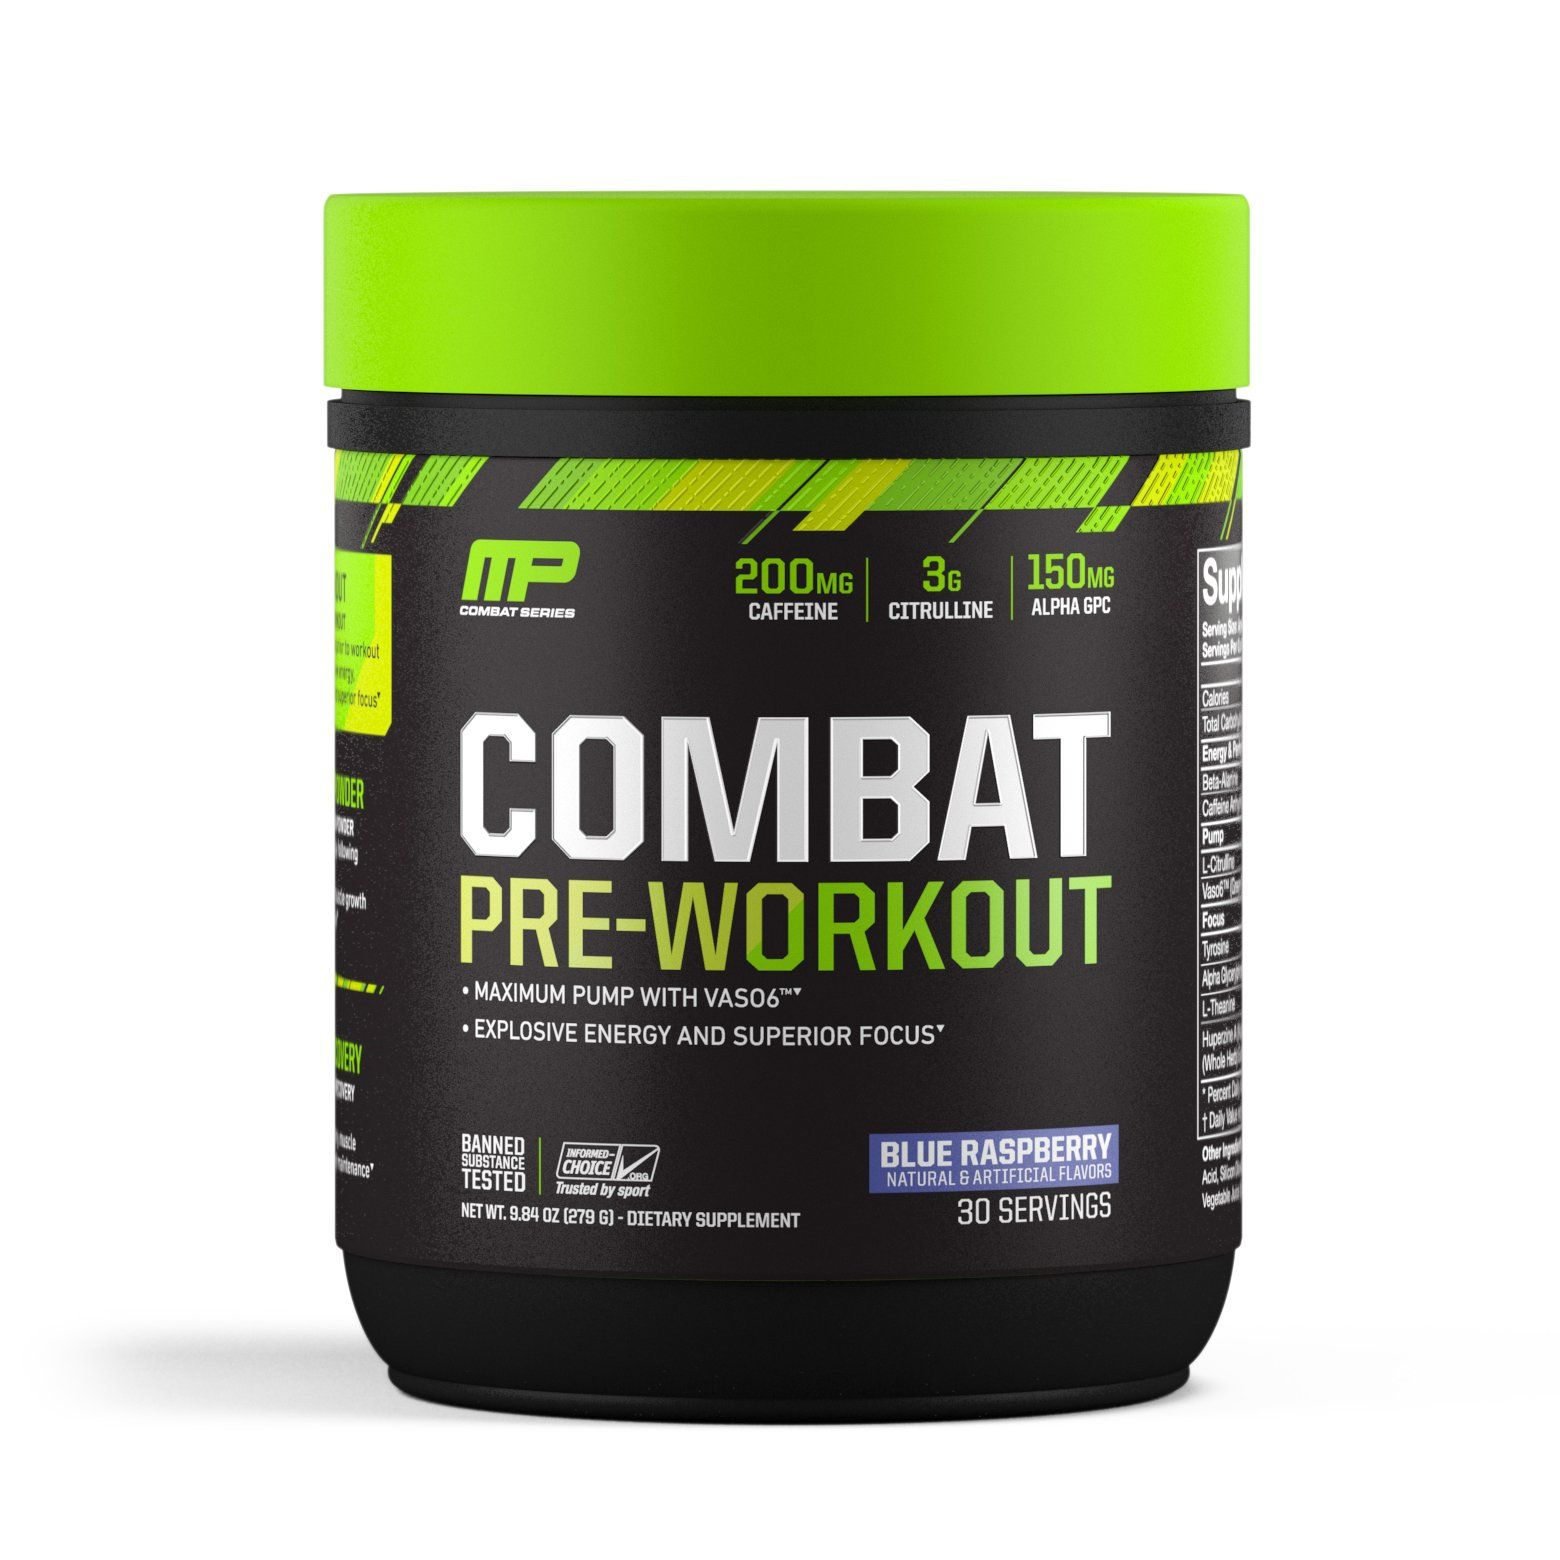 Musclepharm Combat Preworkout Powder For Energy Blue Raspberry 30 Servings You Can Get Additional Details At The Image Workout Fruit Preworkout Muscle Pharm